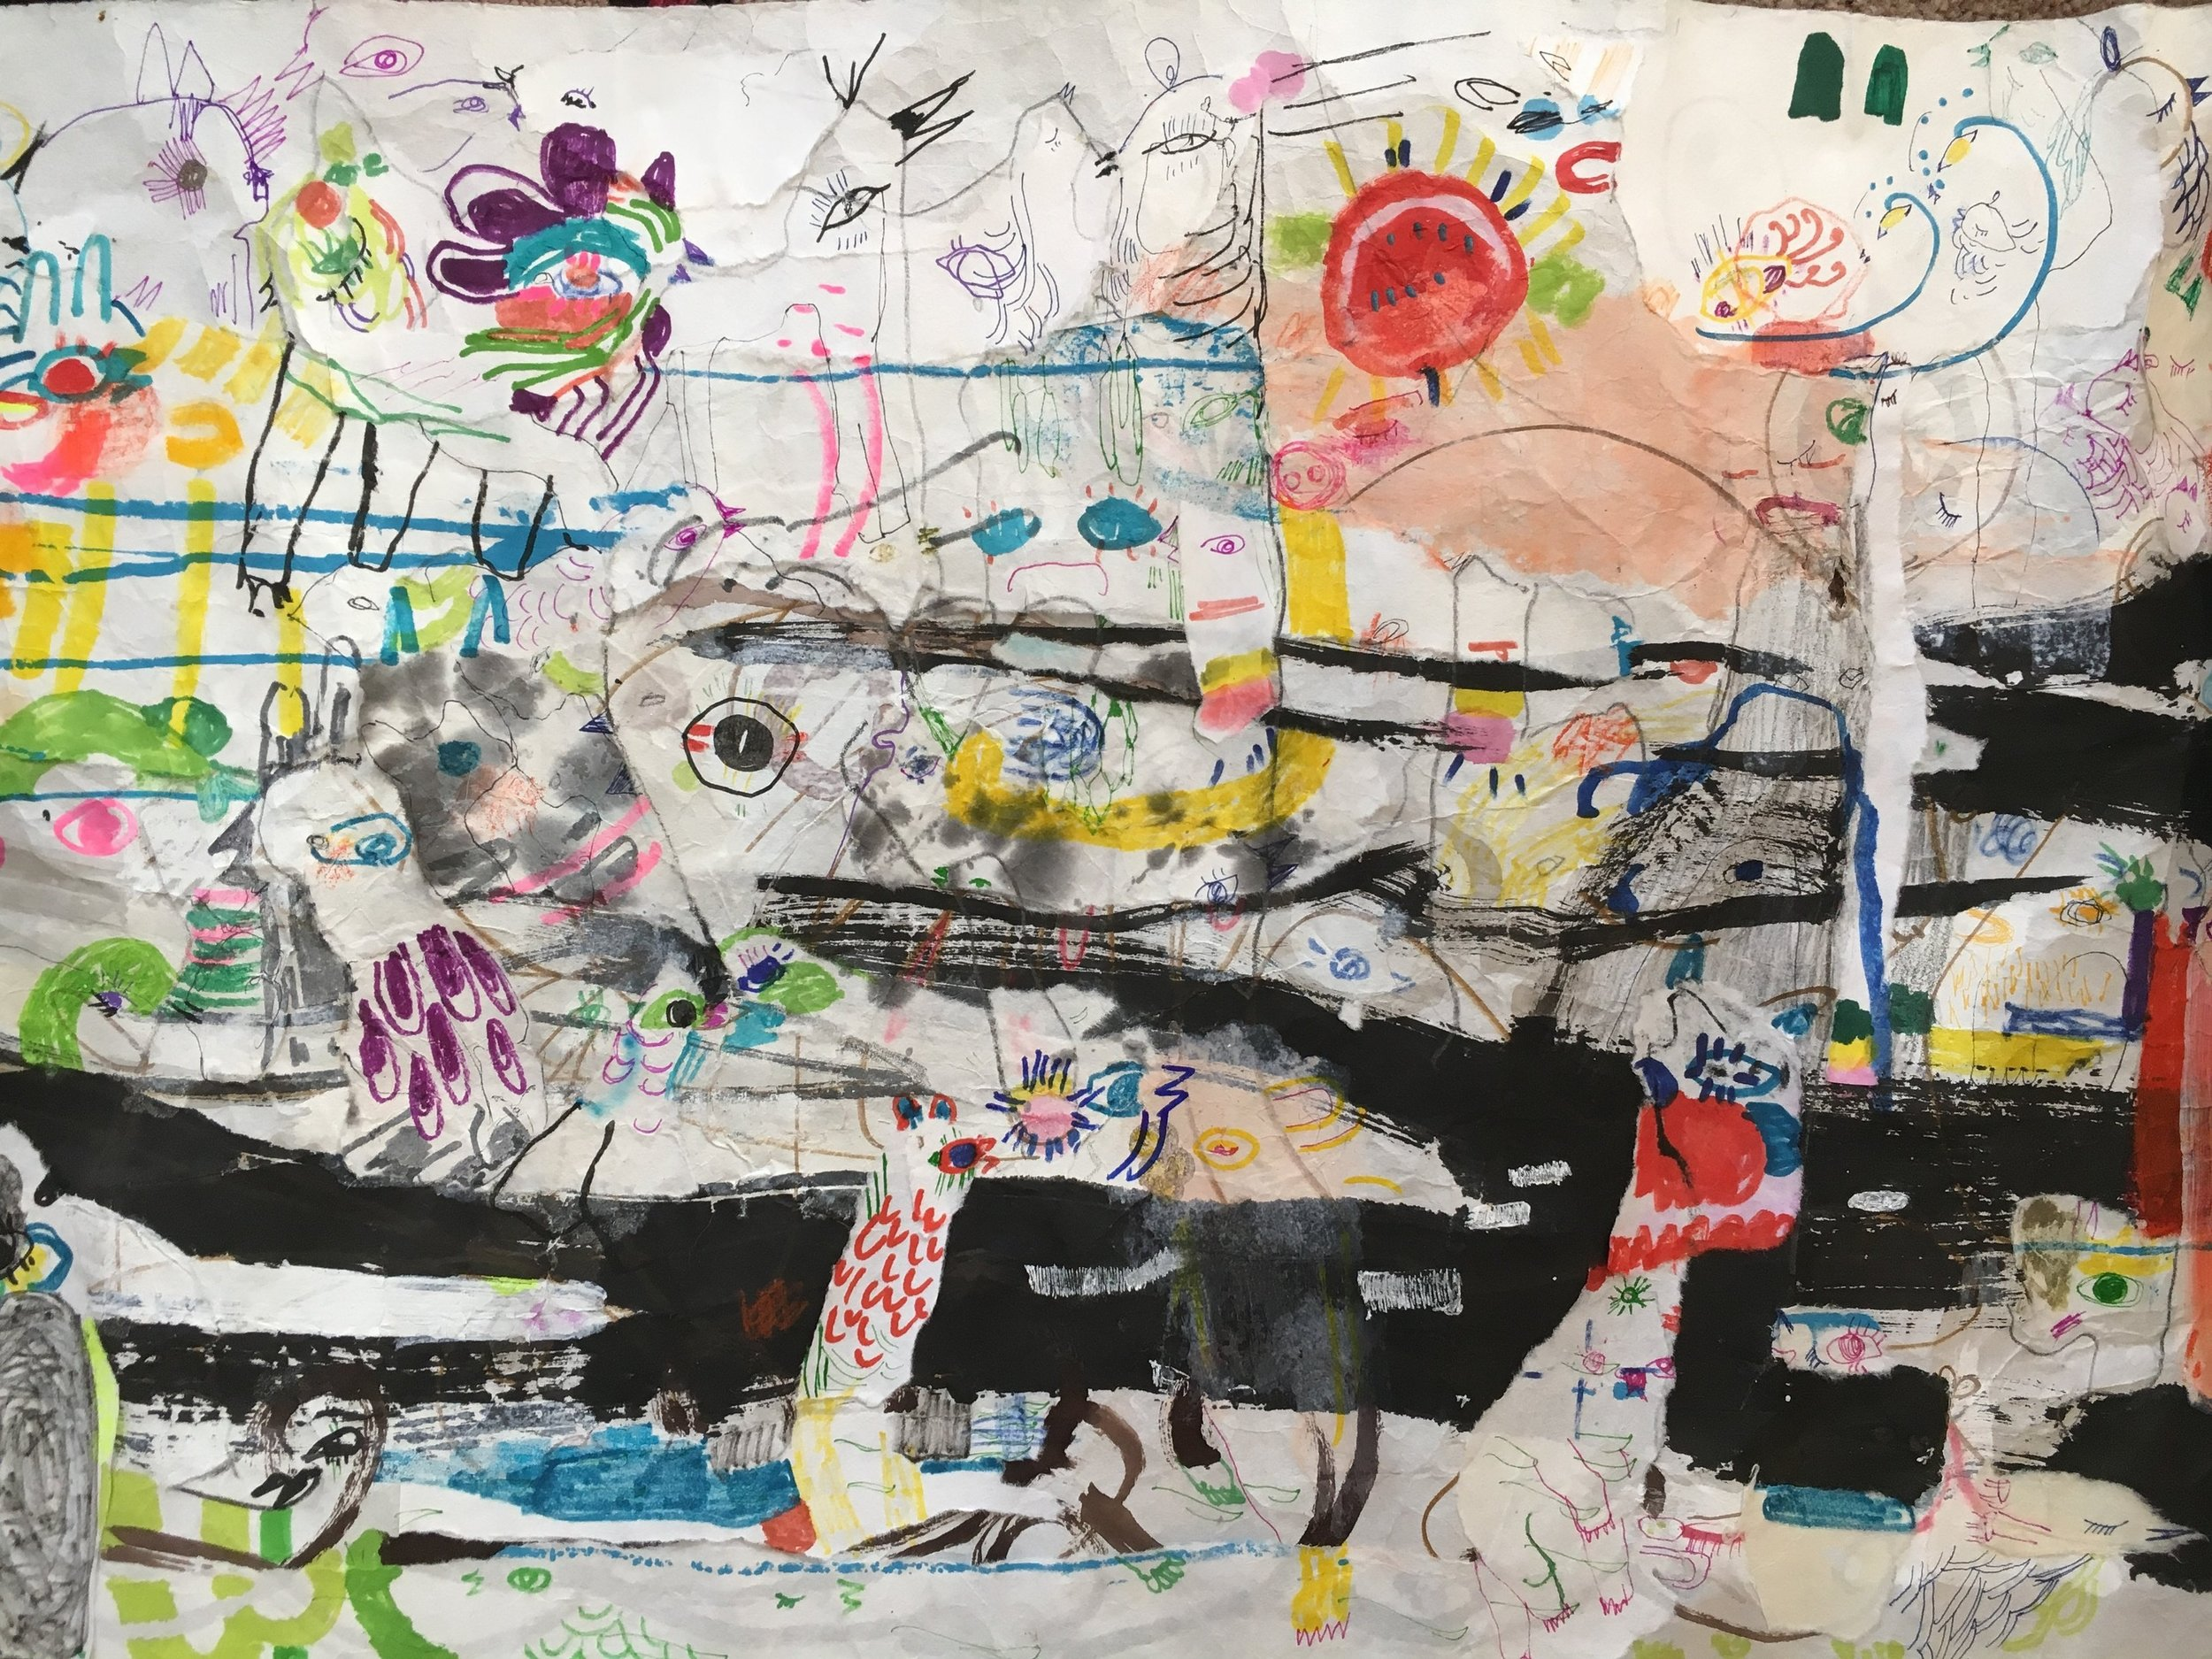 Up Above and All Around, Scroll Section 22  Ink, crayon, dye, watercolor, acrylic, pencil, and rice paper on mulberry paper 2.5 x 30 feet*